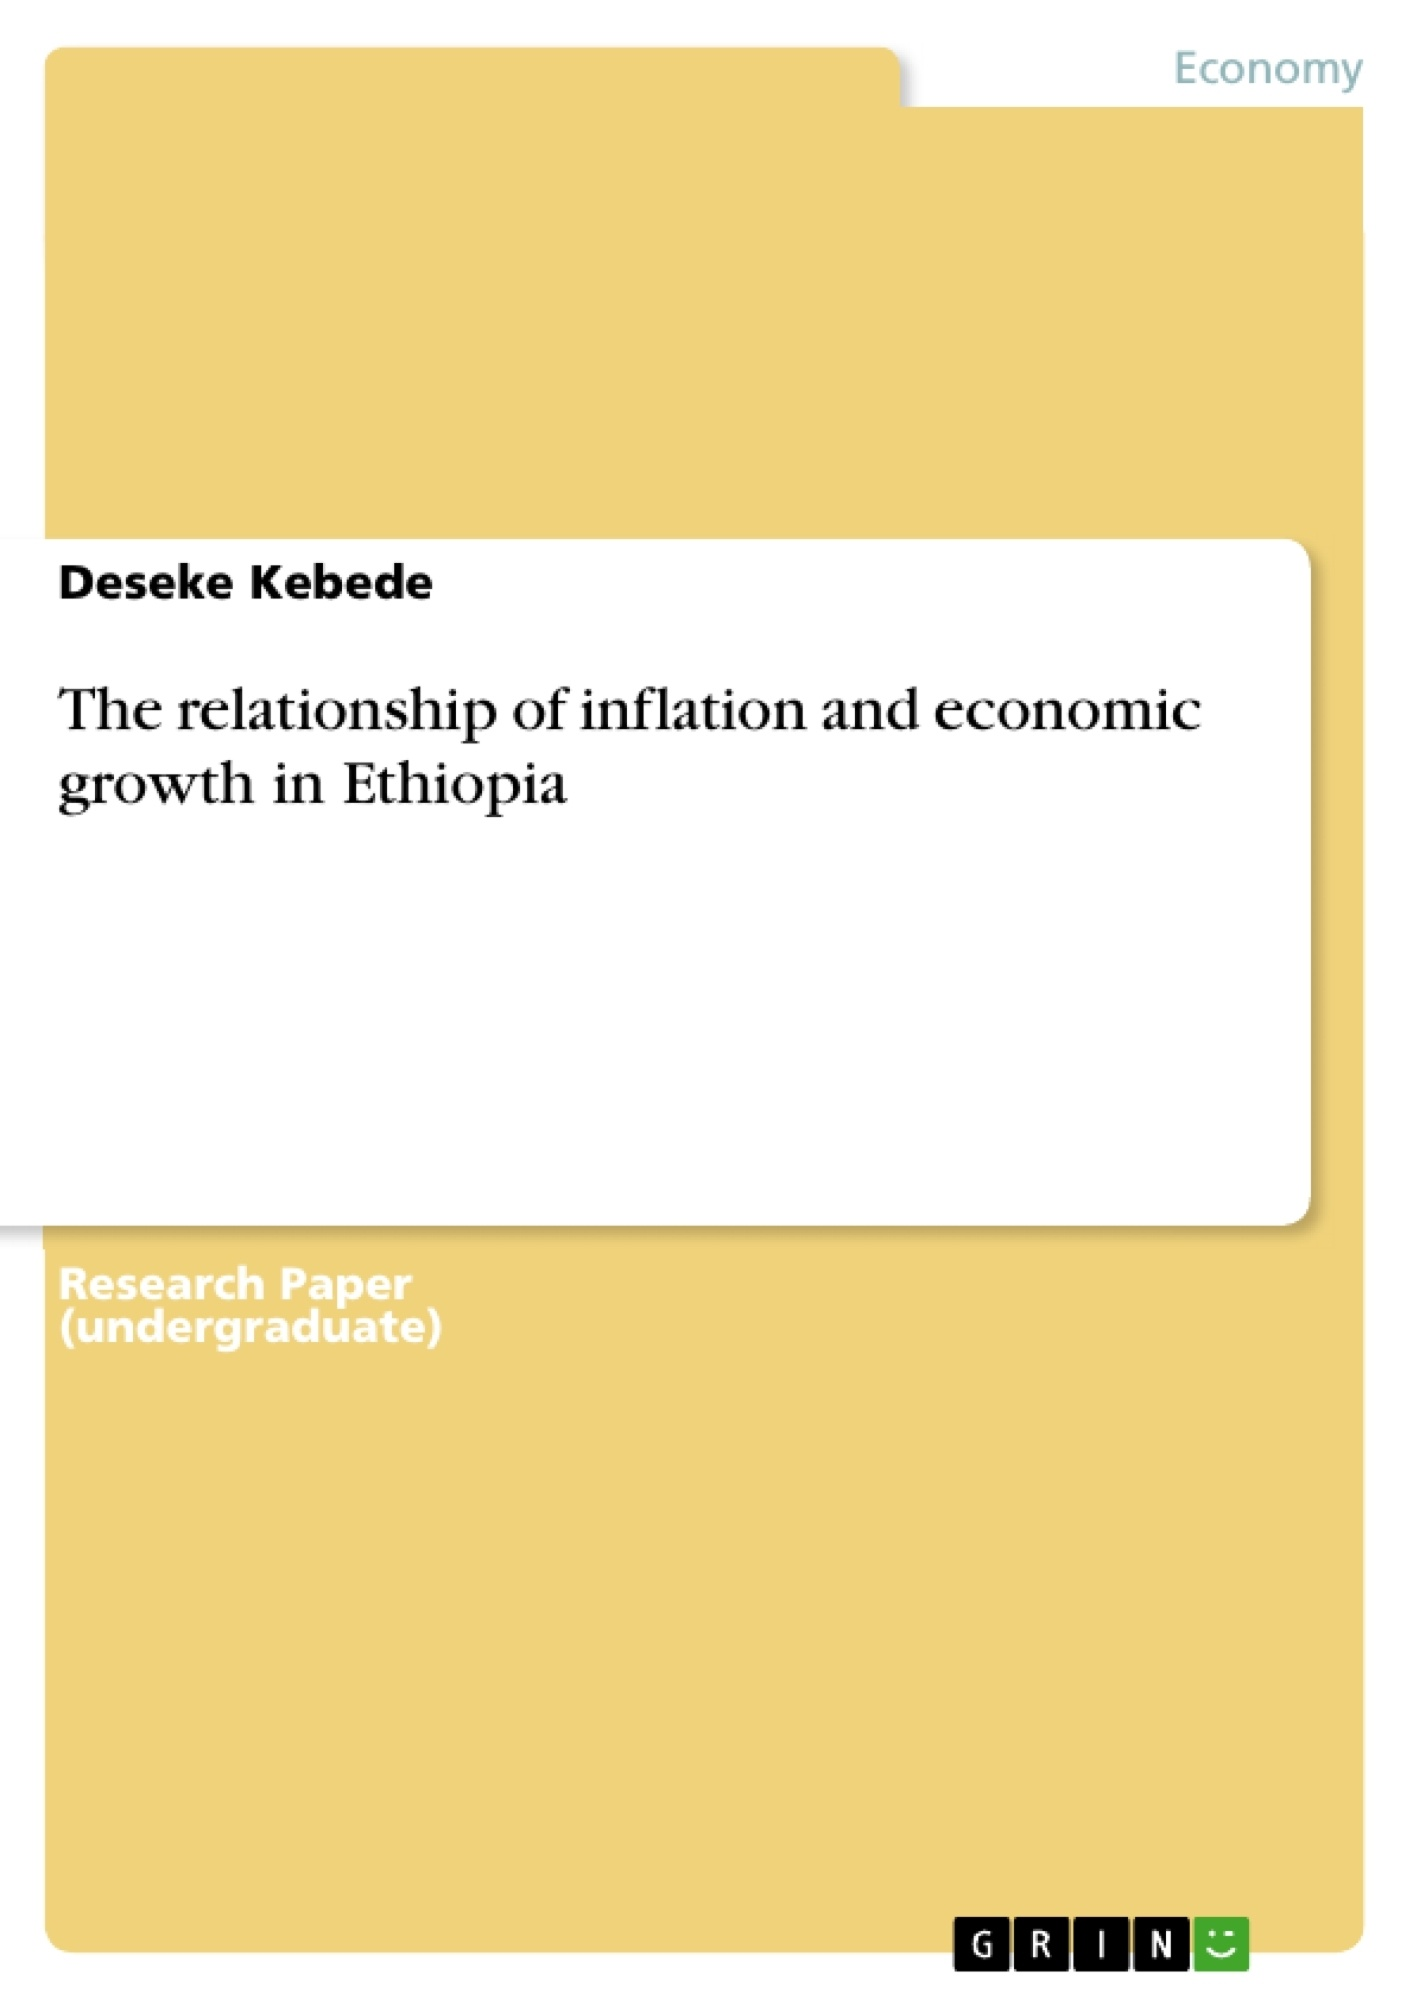 inflation and growth relationship